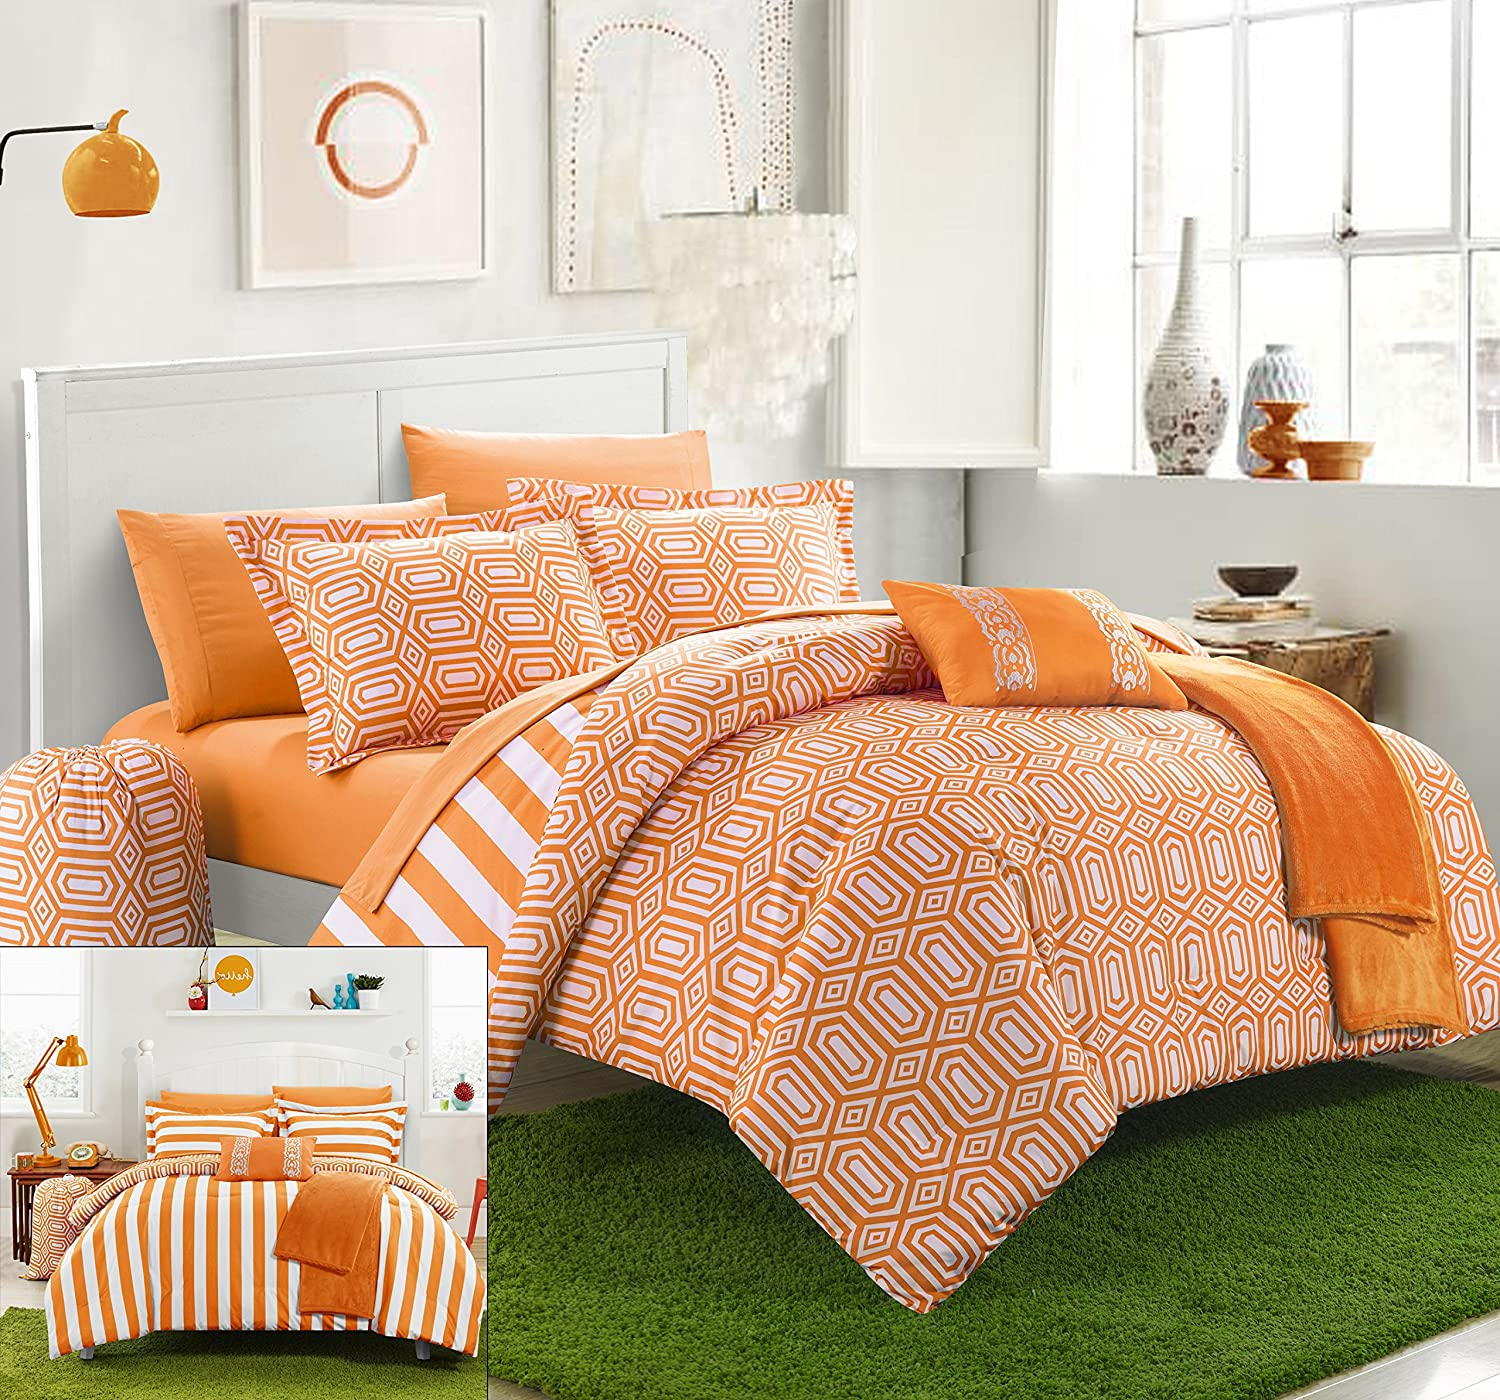 Chic Home 10 Piece Paris Reversible Geometric and Striped Comforter Sheet Set, Full, Orange